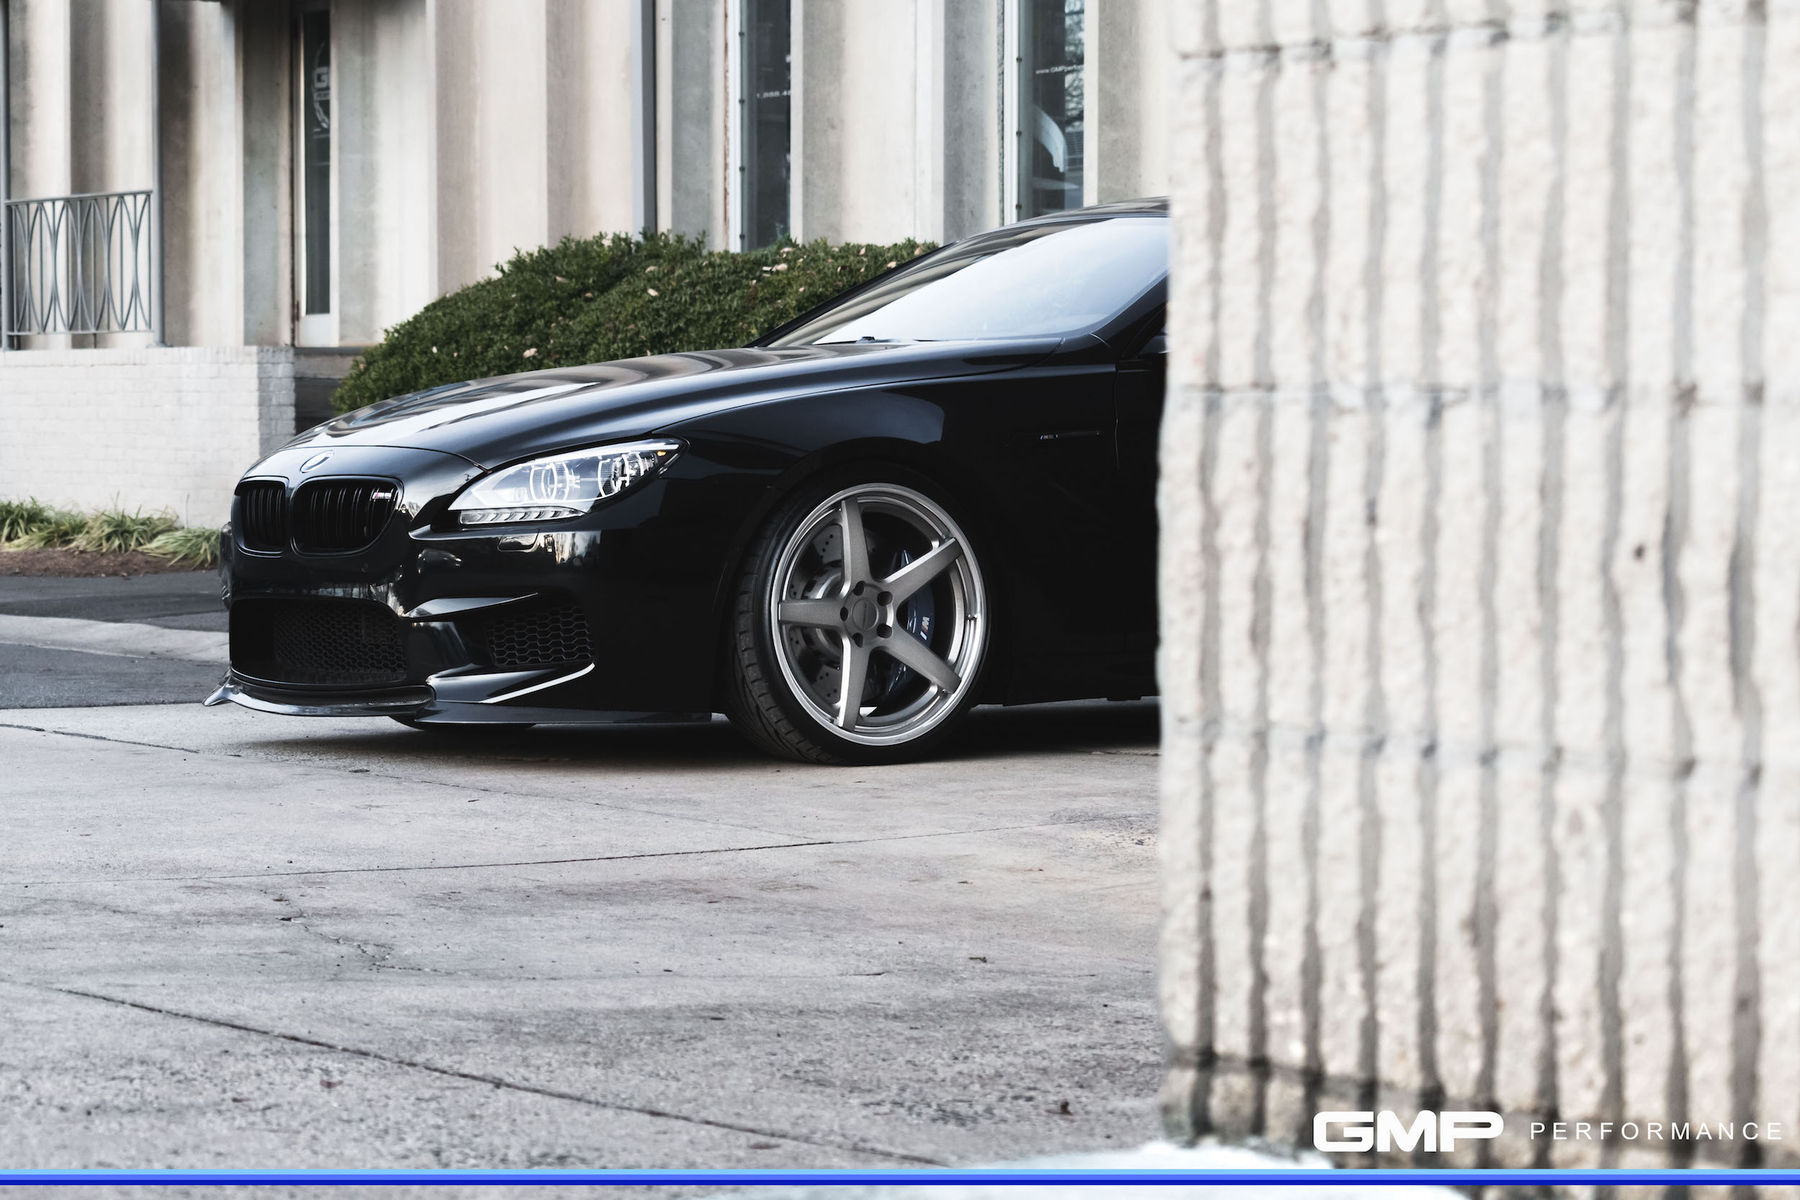 2014 BMW M6 | Alan's GMP Performance-Tuned BMW M6 on Forgeline CF3C-SL Wheels